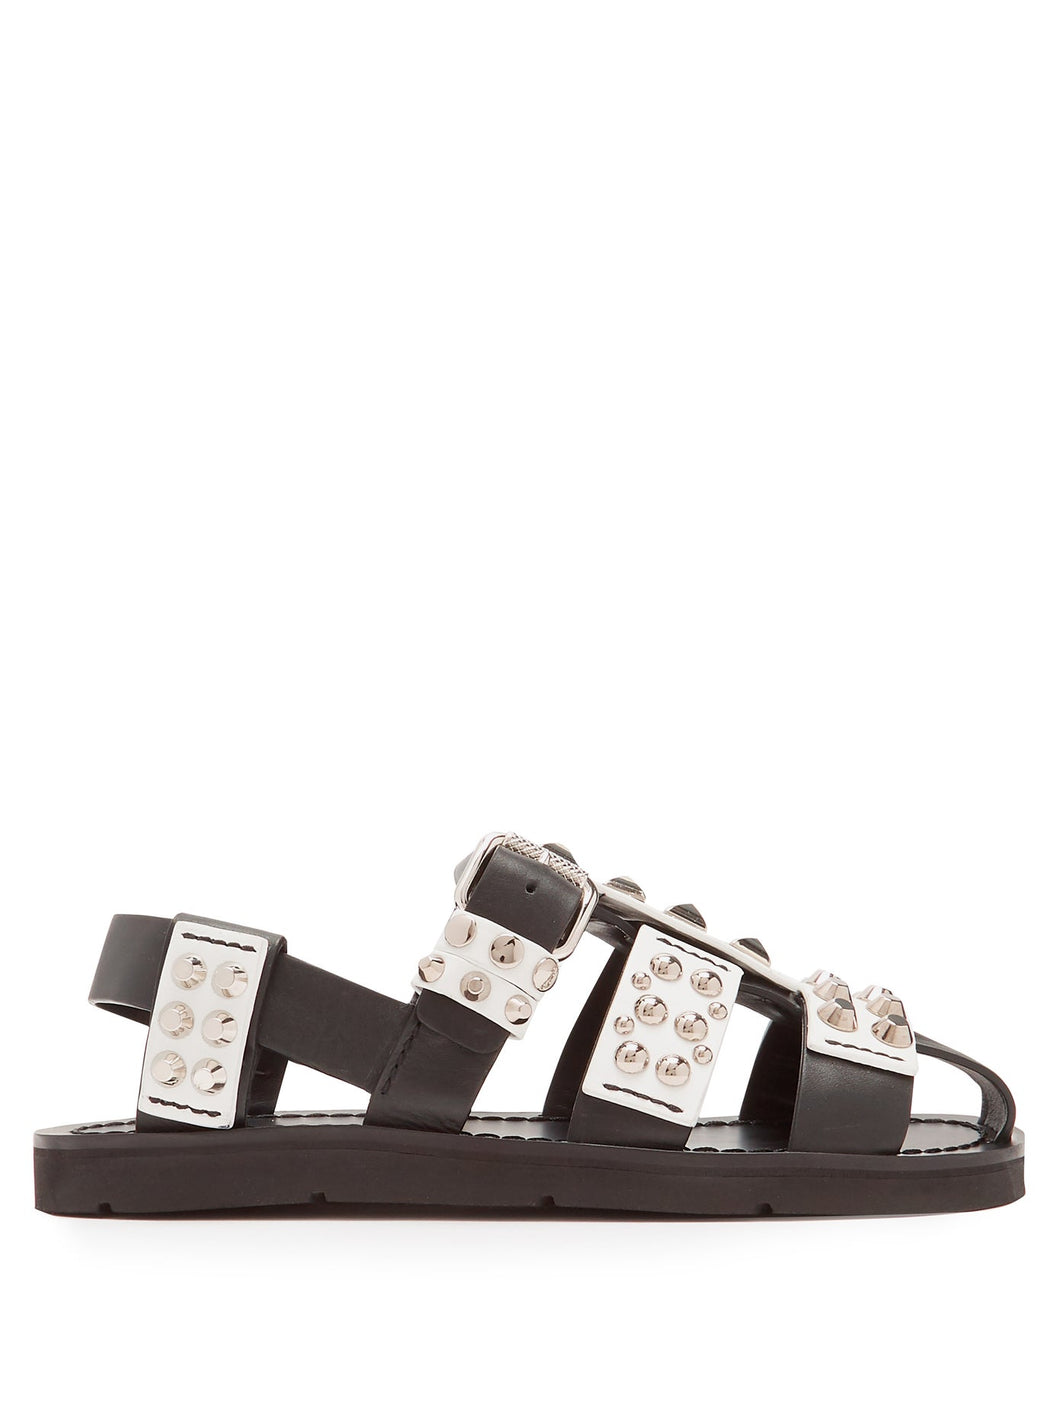 Stud-embellished leather sandals